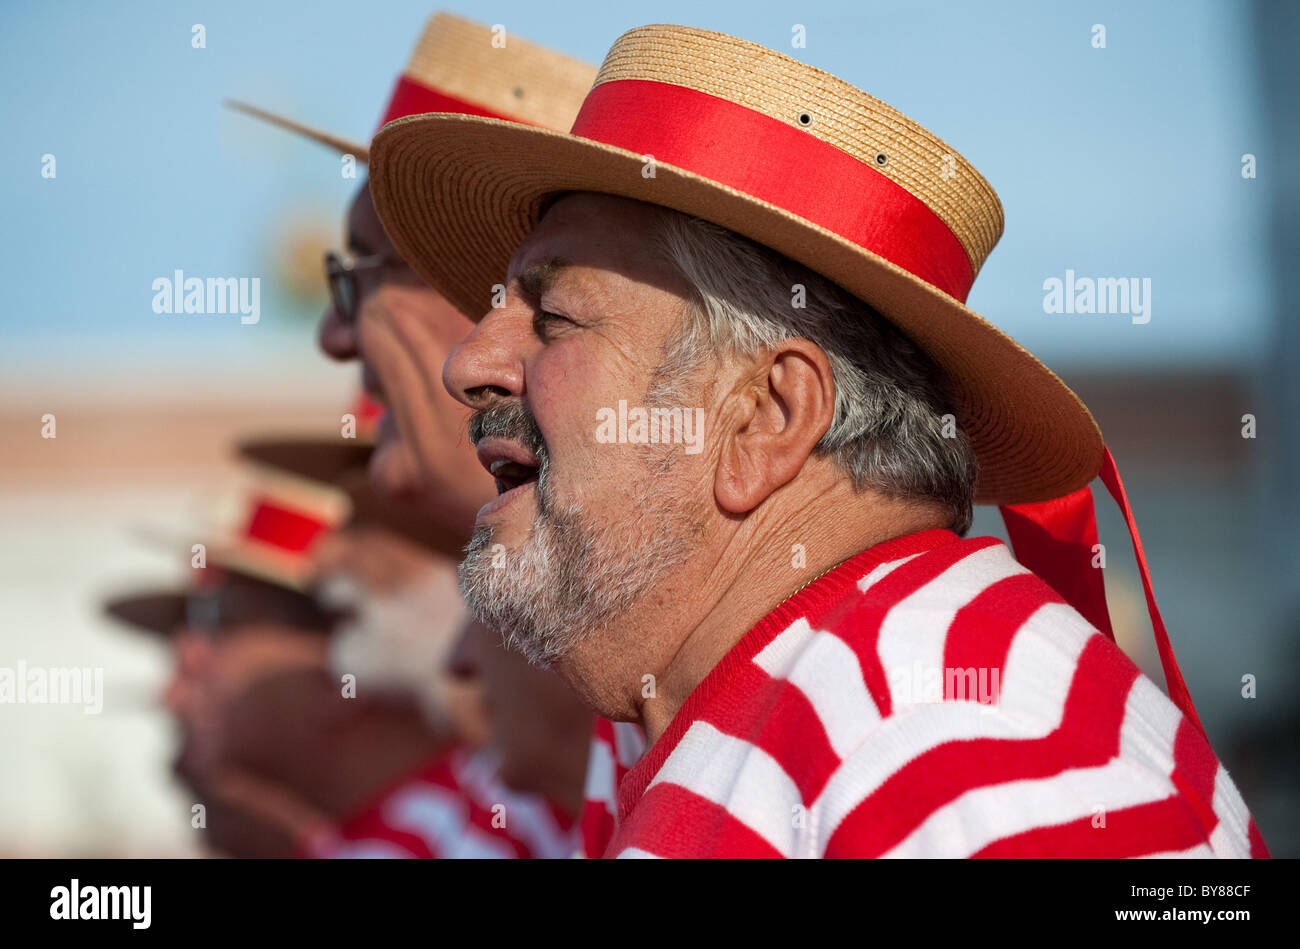 Singers of the Coro Serenissima wearing the traditional gondolier dress - Stock Image